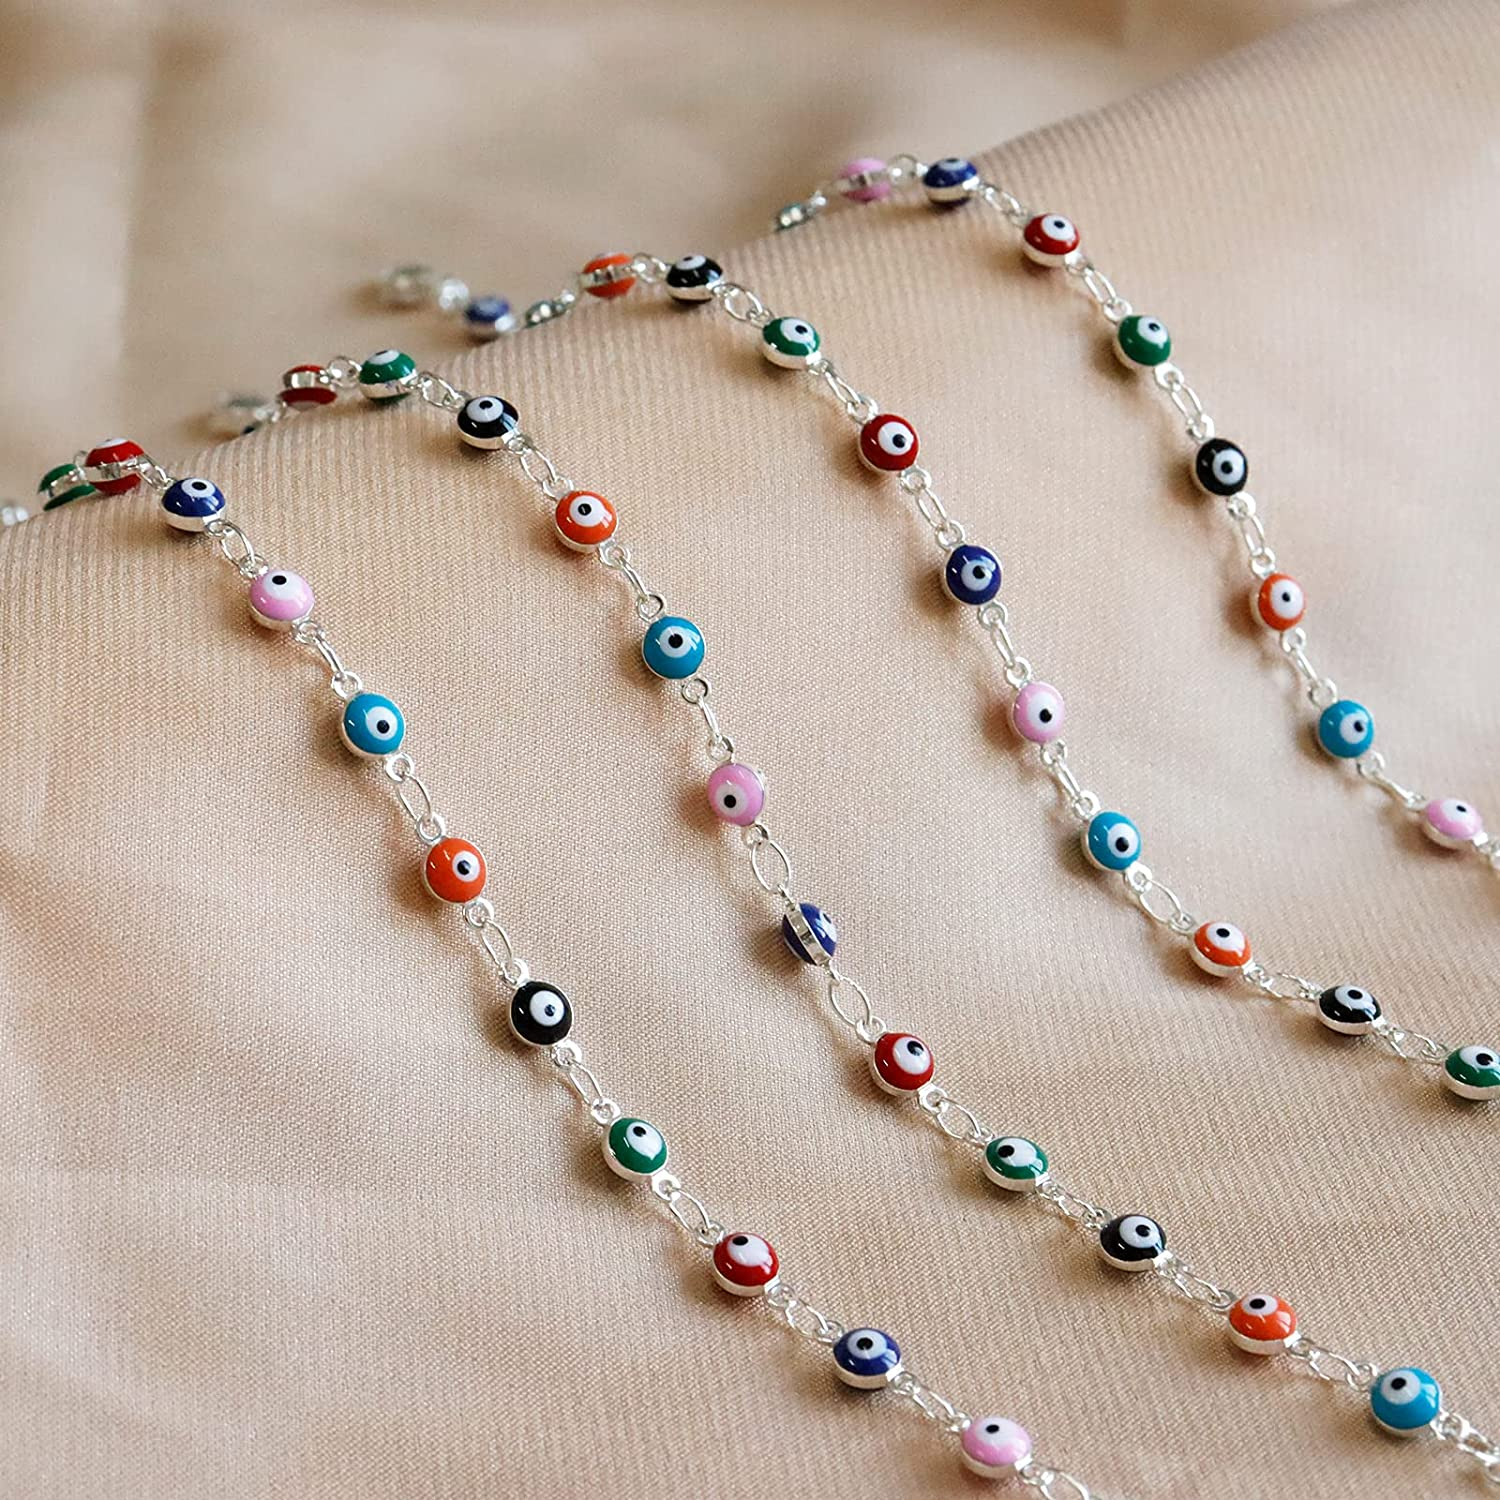 choice of all Dainty Evil Eye Necklace for Women,Colorful Evil Eye Beaded Choker Necklaces for Girls